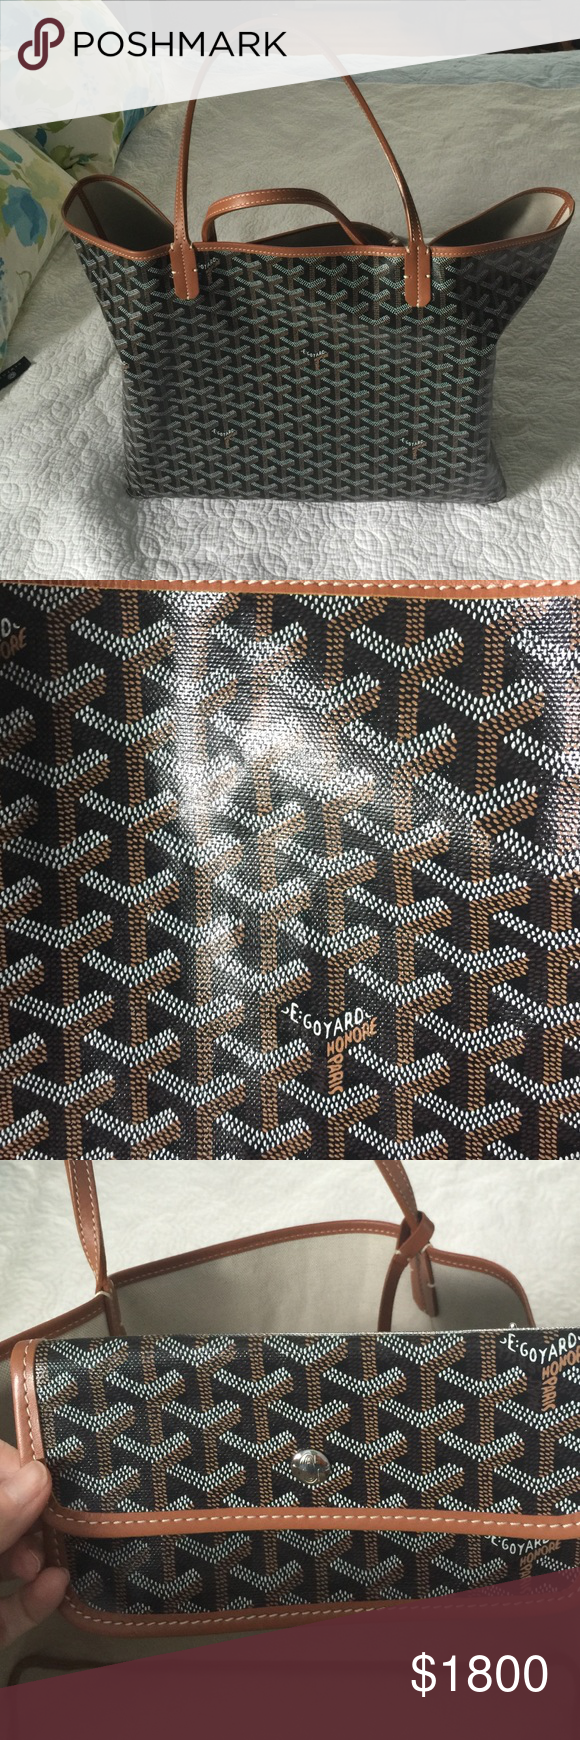 Goyard tote. Black and Tan GM size. Used a handful of times. In great shape. Comes with tags, dust bag, Pouchette. Authentic. No trades. Goyard Bags Totes